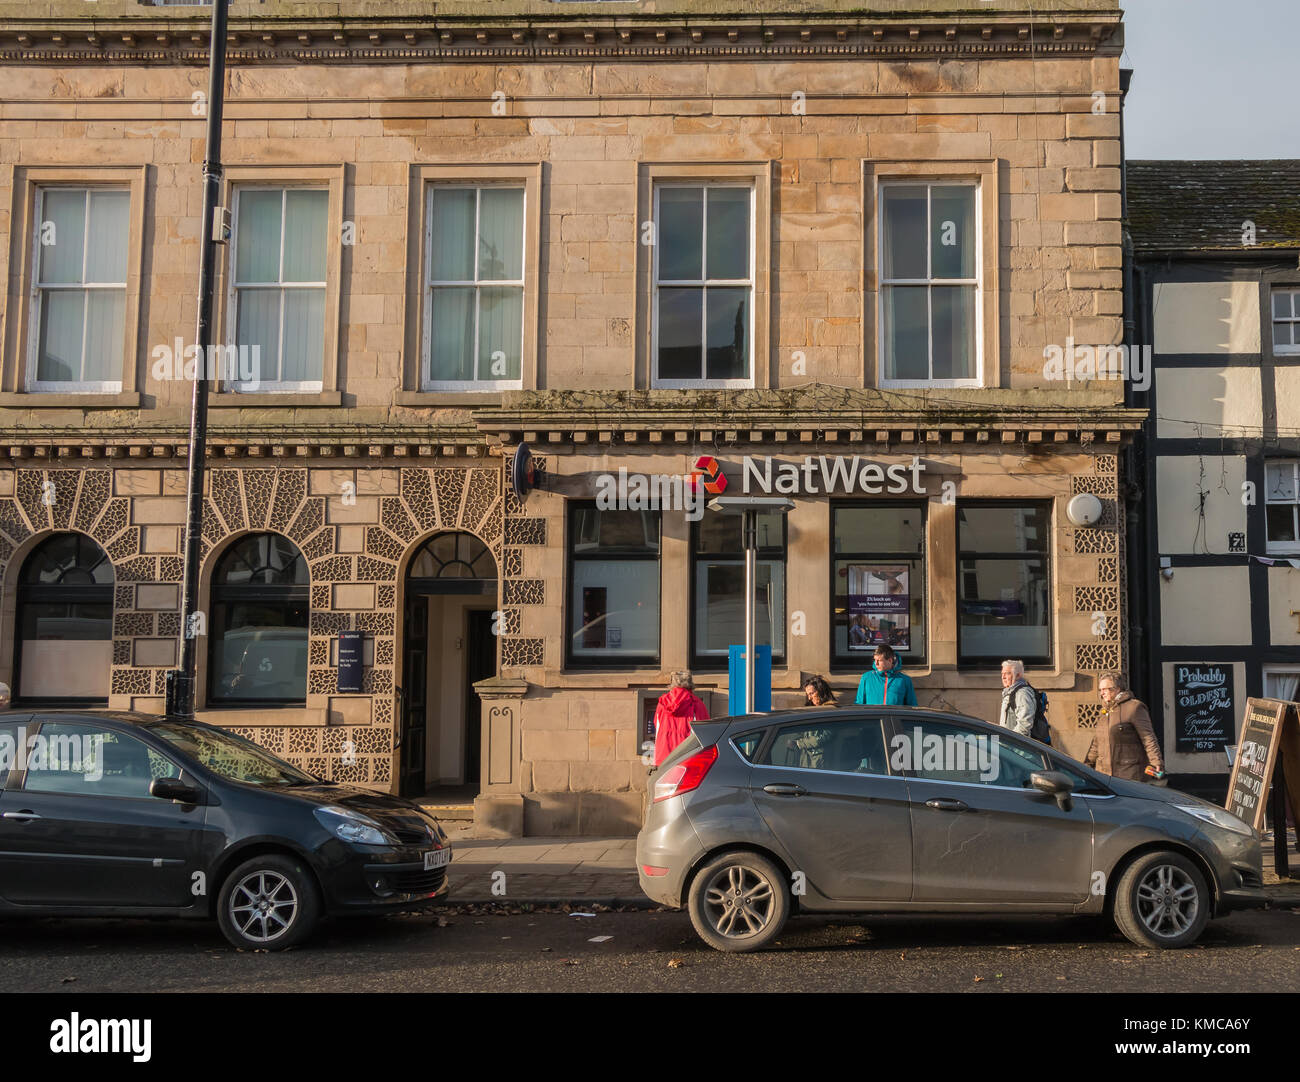 The Barnard Castle branch of the National Westminster Bank, one of 197 branches scheduled for closure in May 2018. - Stock Image